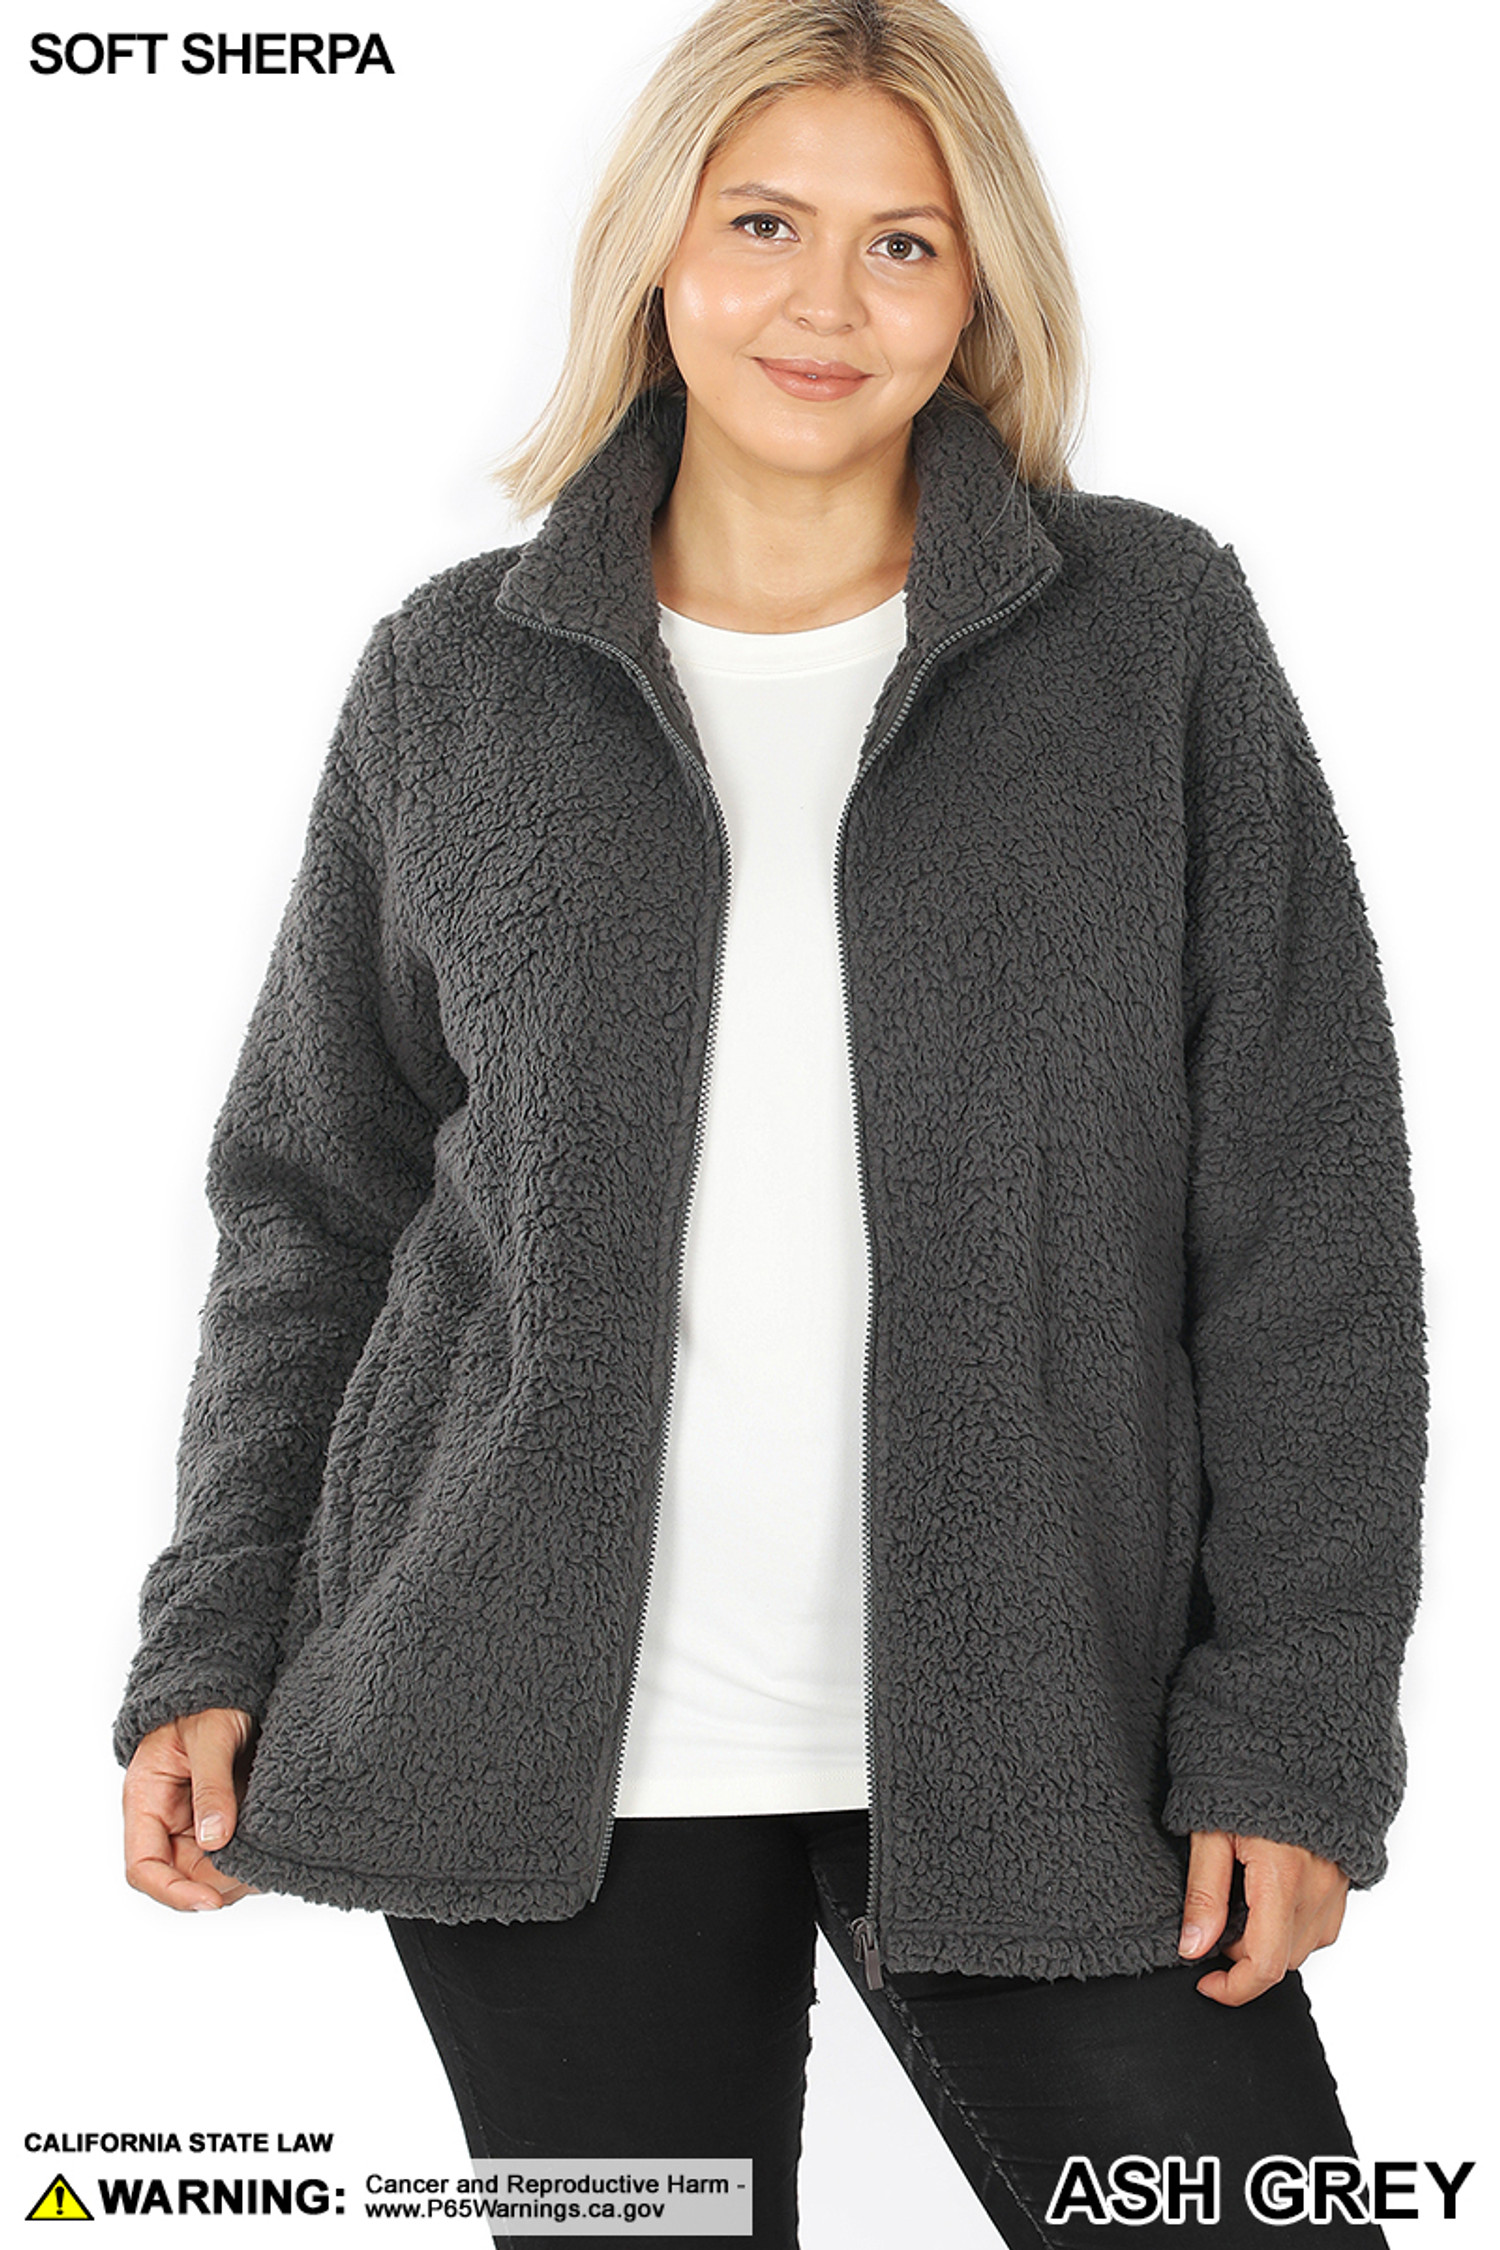 Front unzipped image of Ash Grey Sherpa Zip Up Plus Size Jacket with Side Pockets